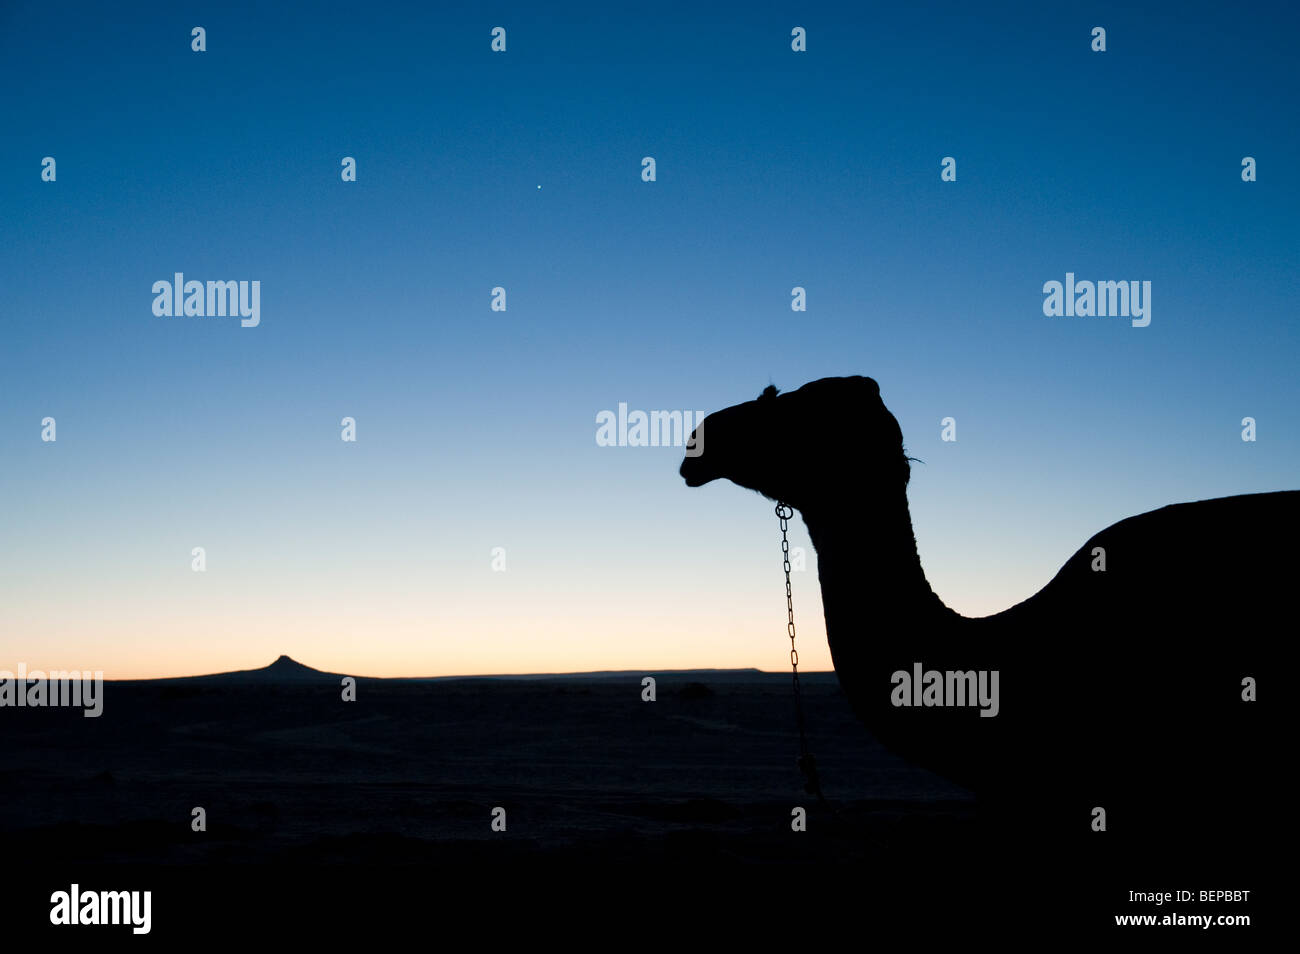 Silhouette of a camel in the desert in Egypt - Stock Image